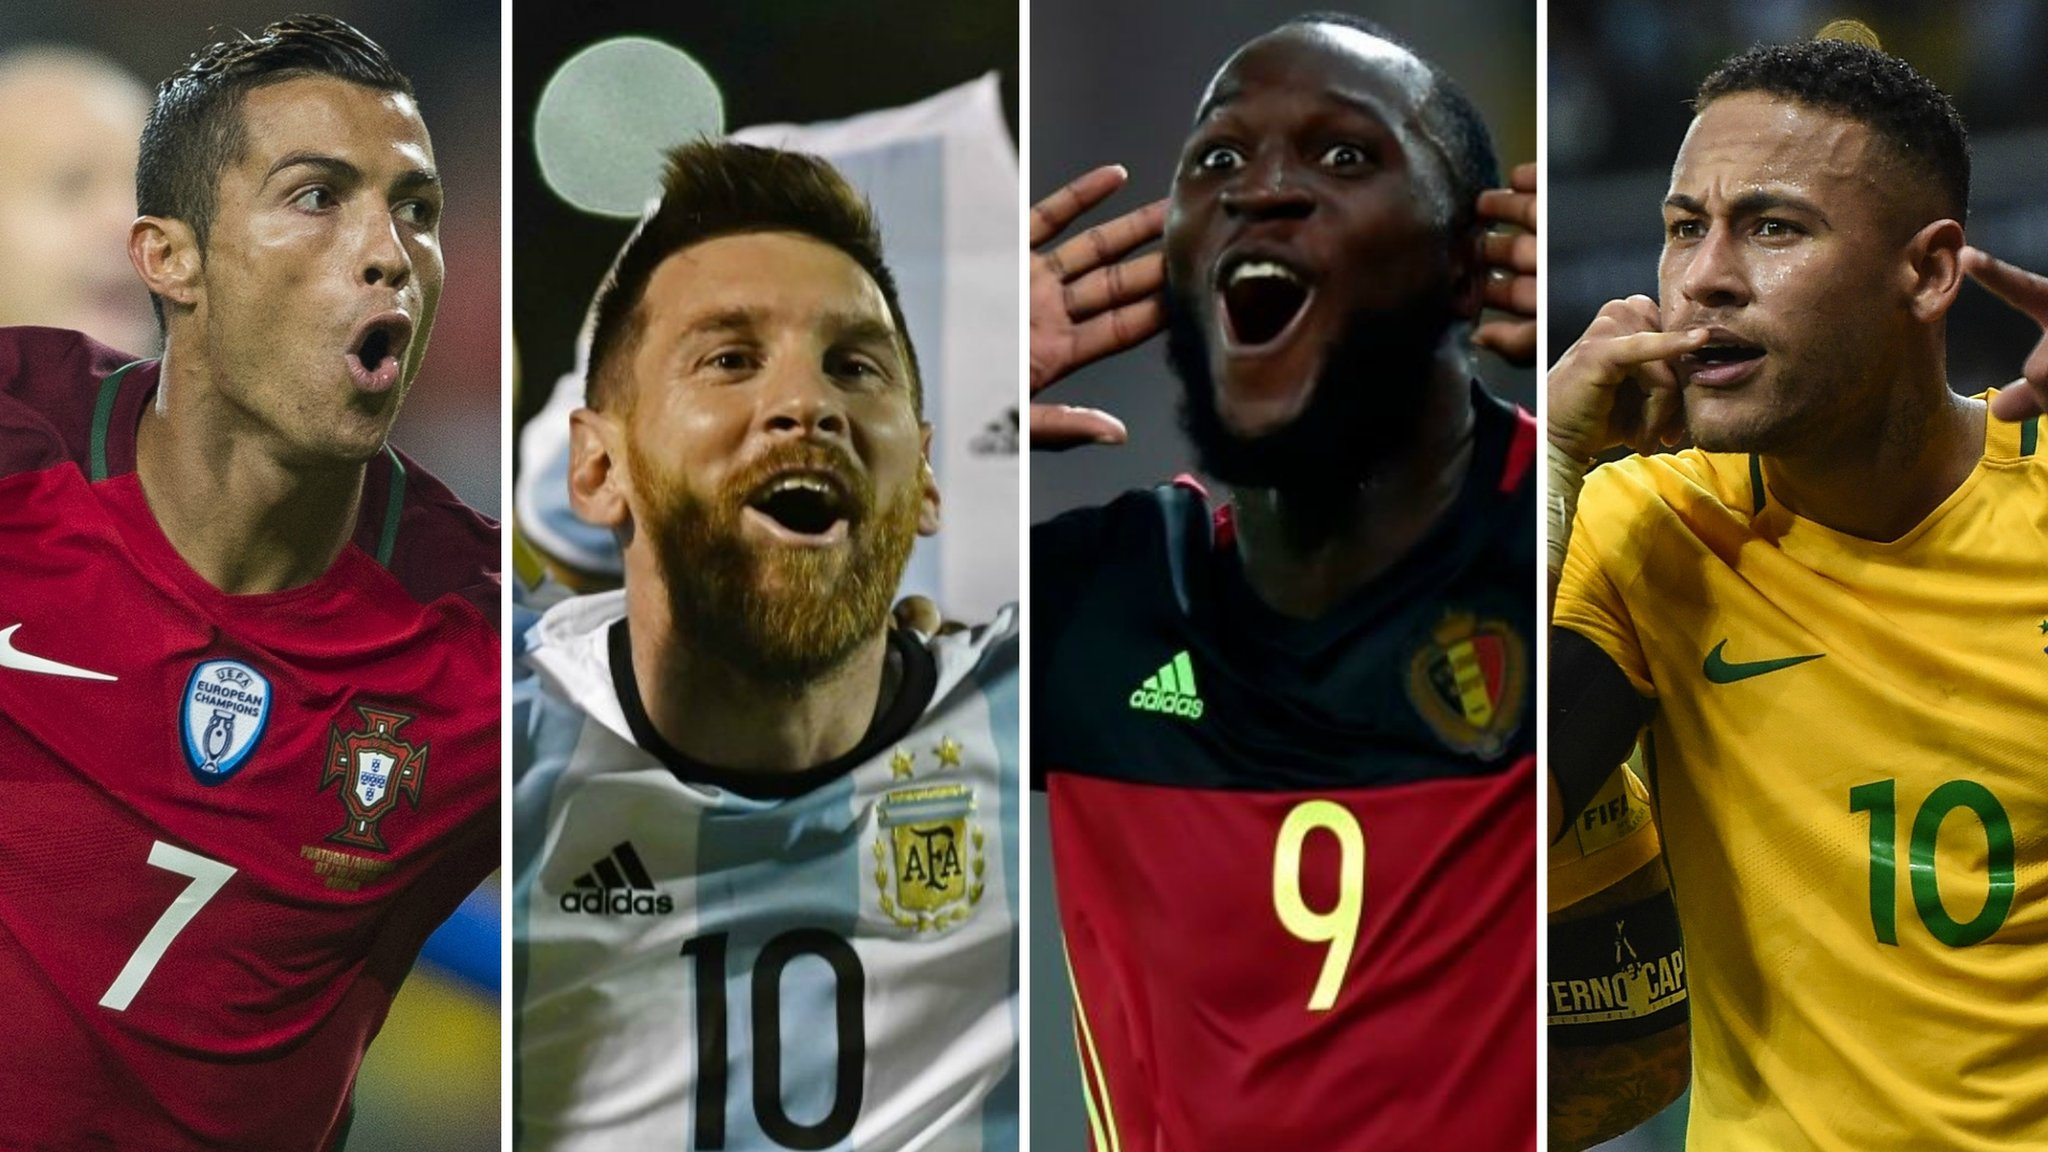 Which country should you really be rooting for? Take our quiz to find out